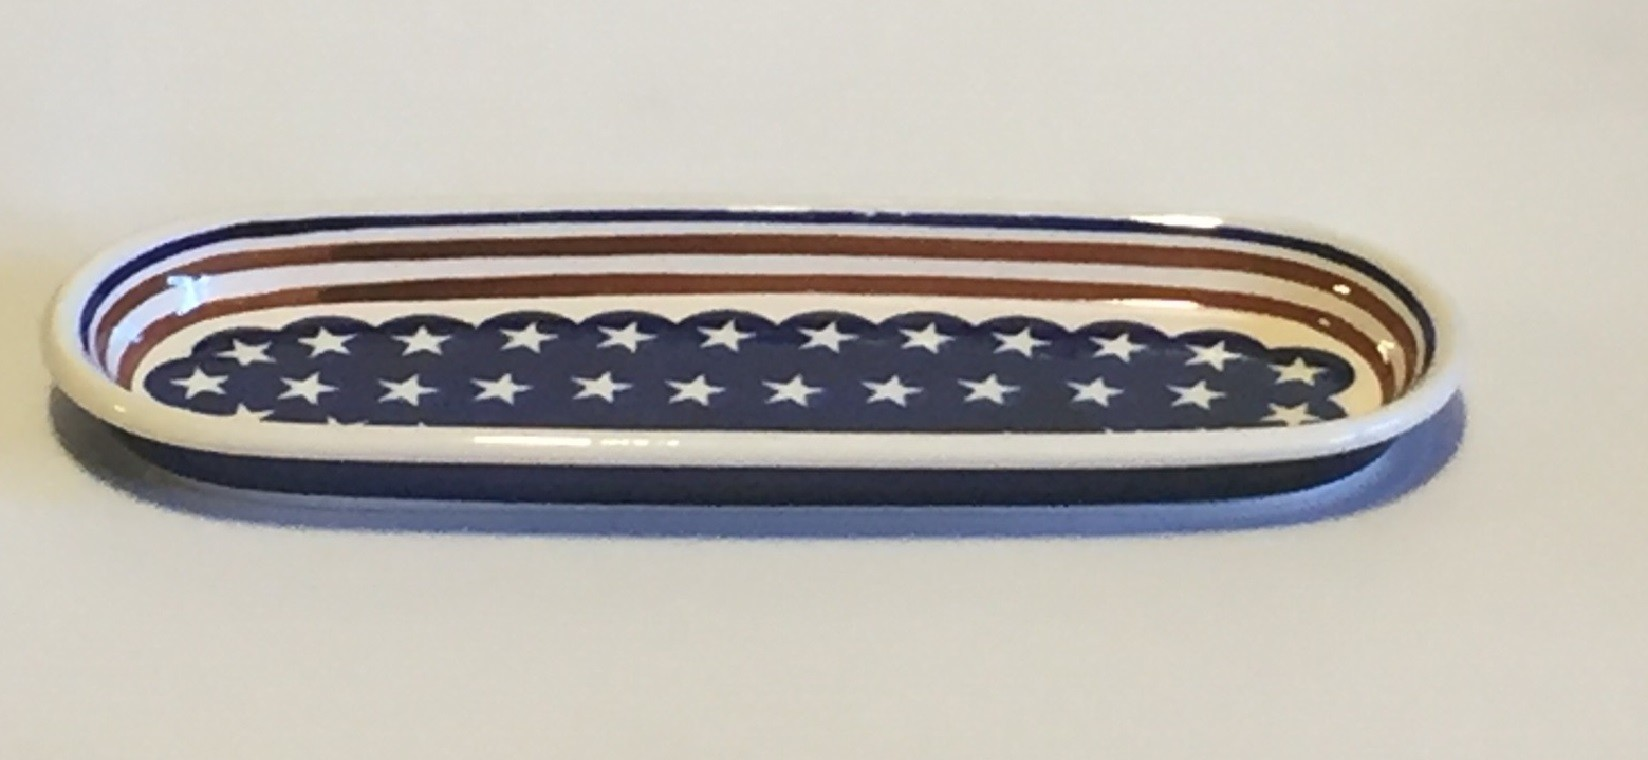 "Pottery Avenue Stars N Stripes 11"" Cracker-Olive Stoneware Tray"